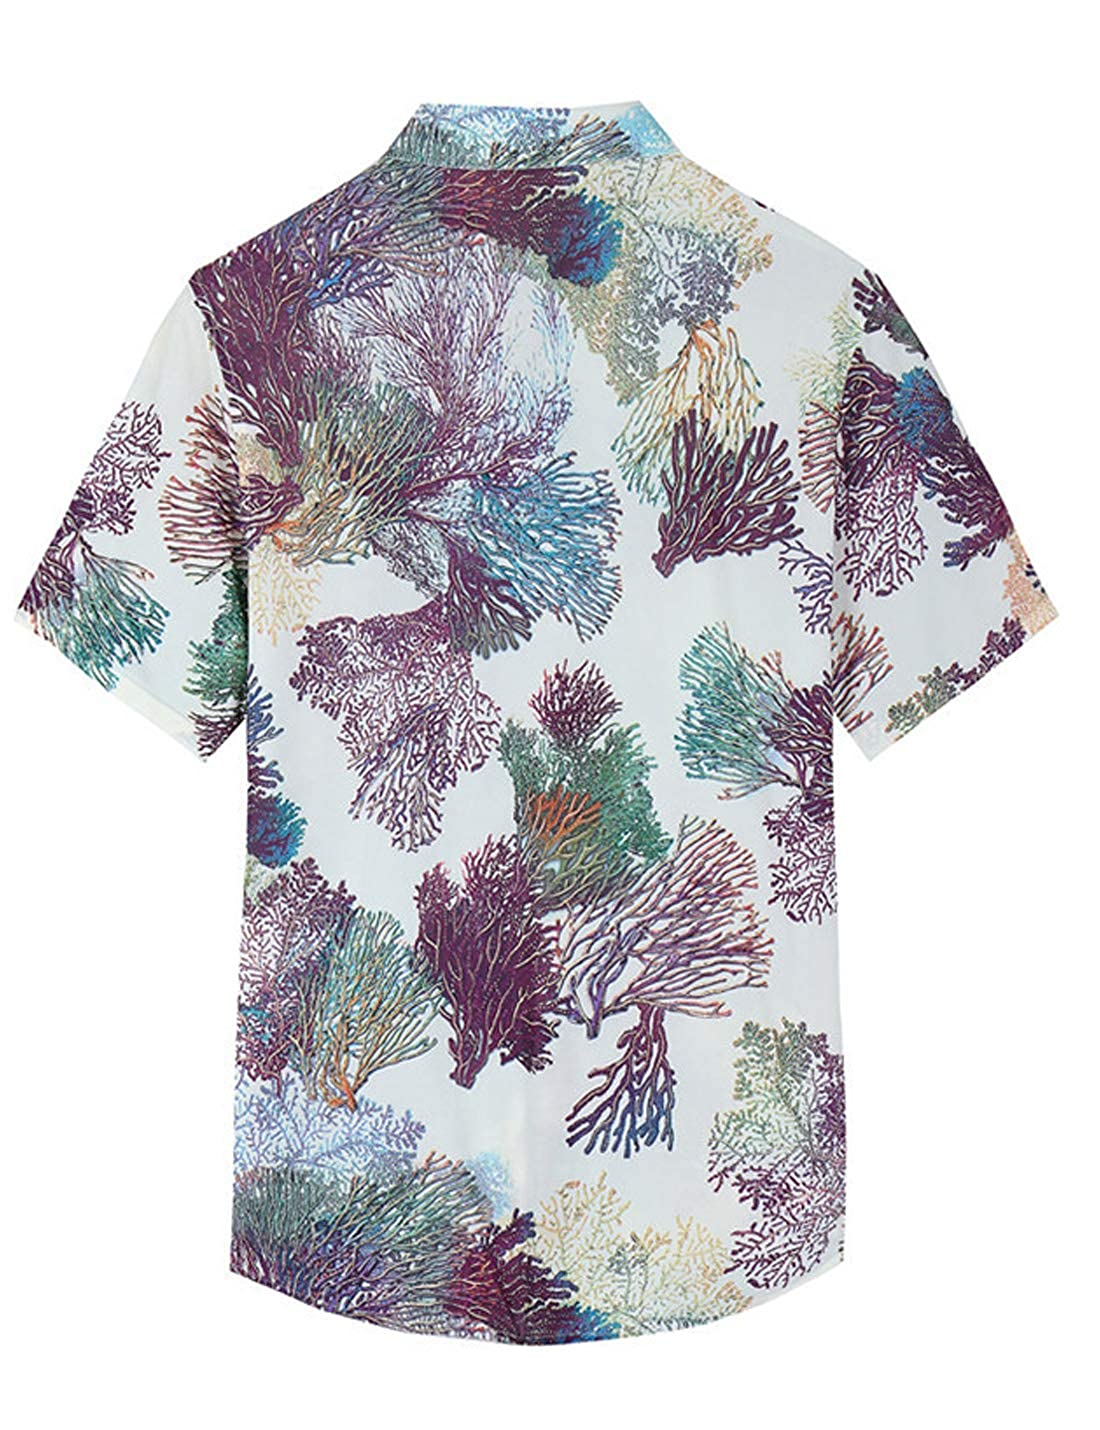 Yimoon Mens Short Sleeve Printed Stretch Casual Beach Hawaiian Shirts